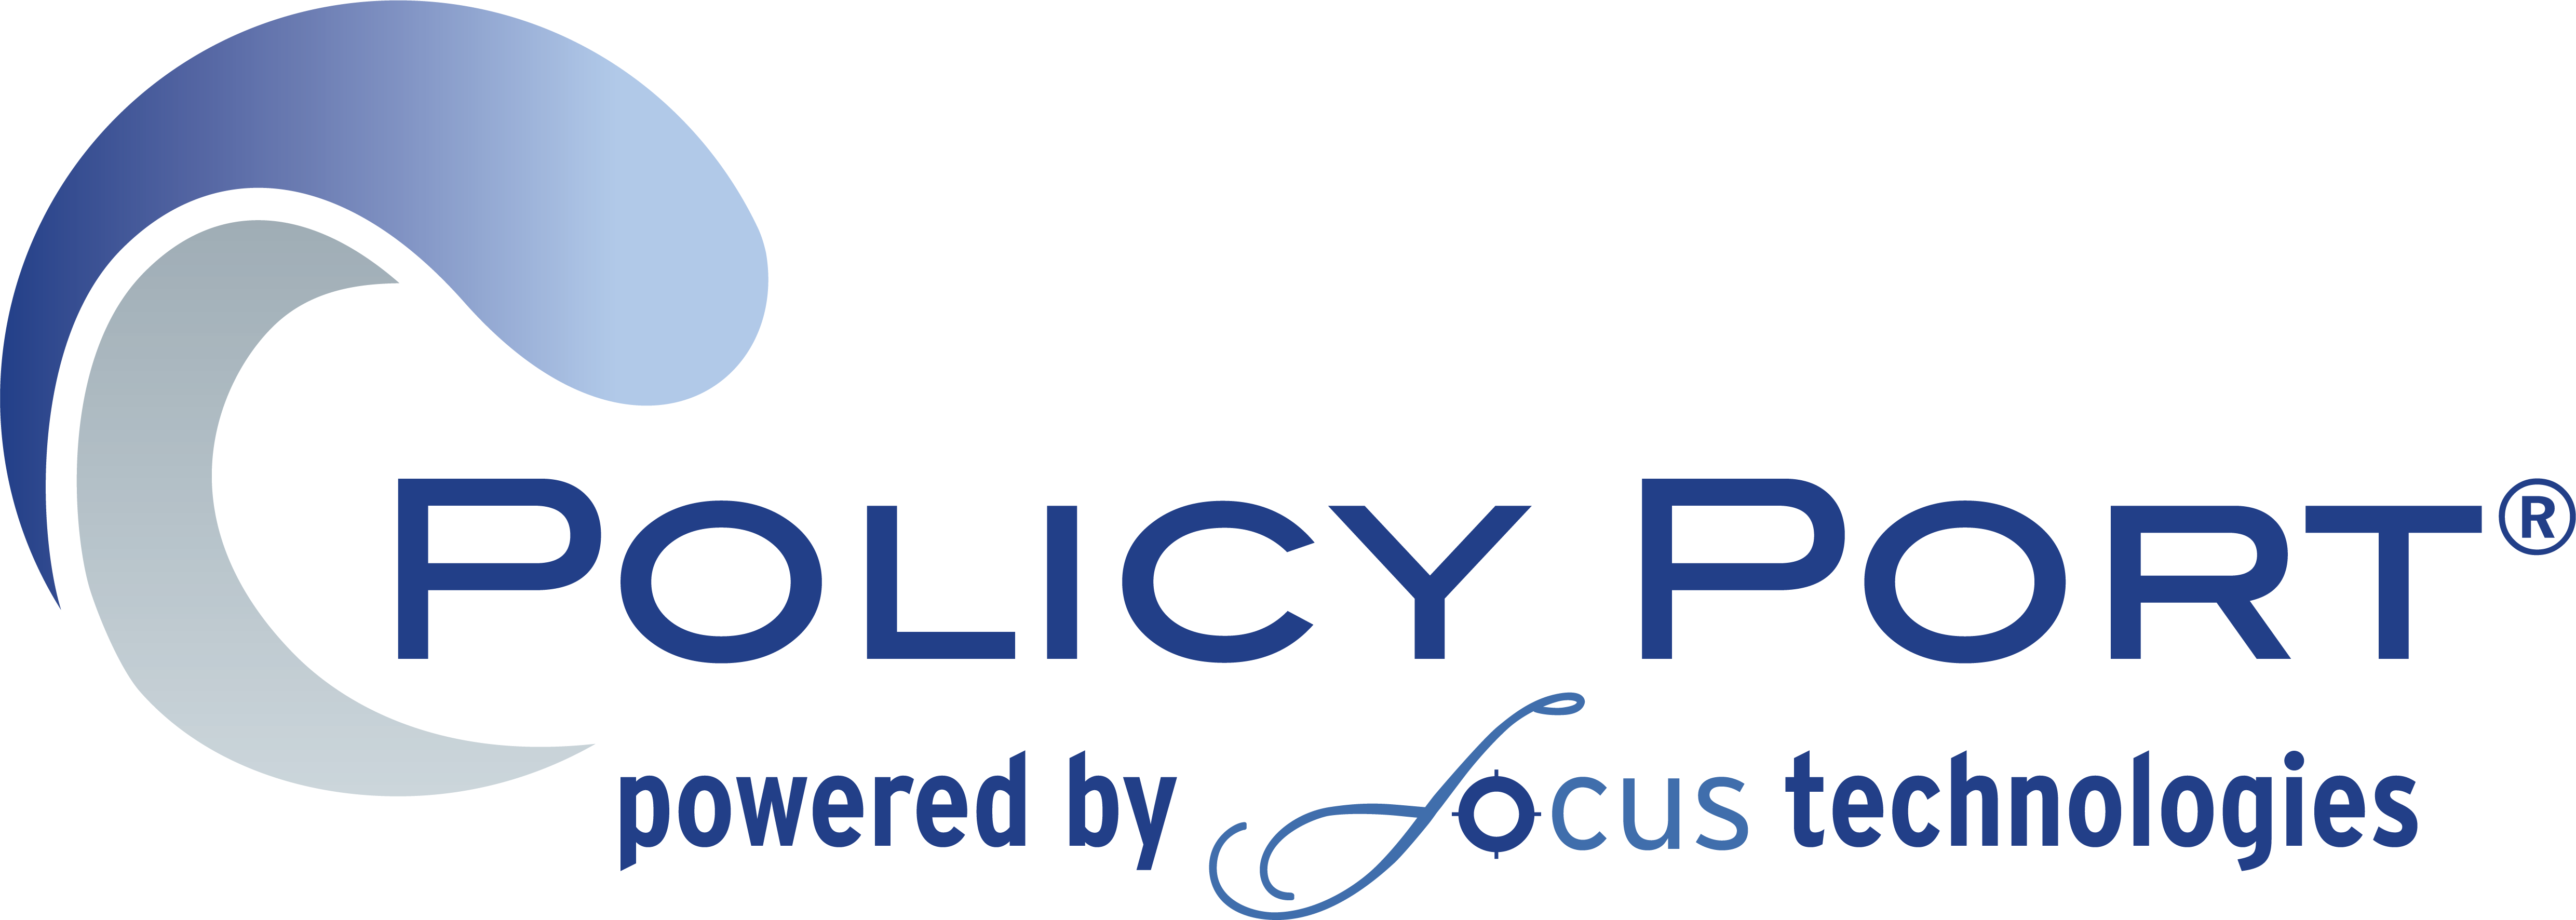 The PolicyPort® Solution • Powered by Focus TechnologiesThe PolicyPort® Solution • Powered by Focus Technologies